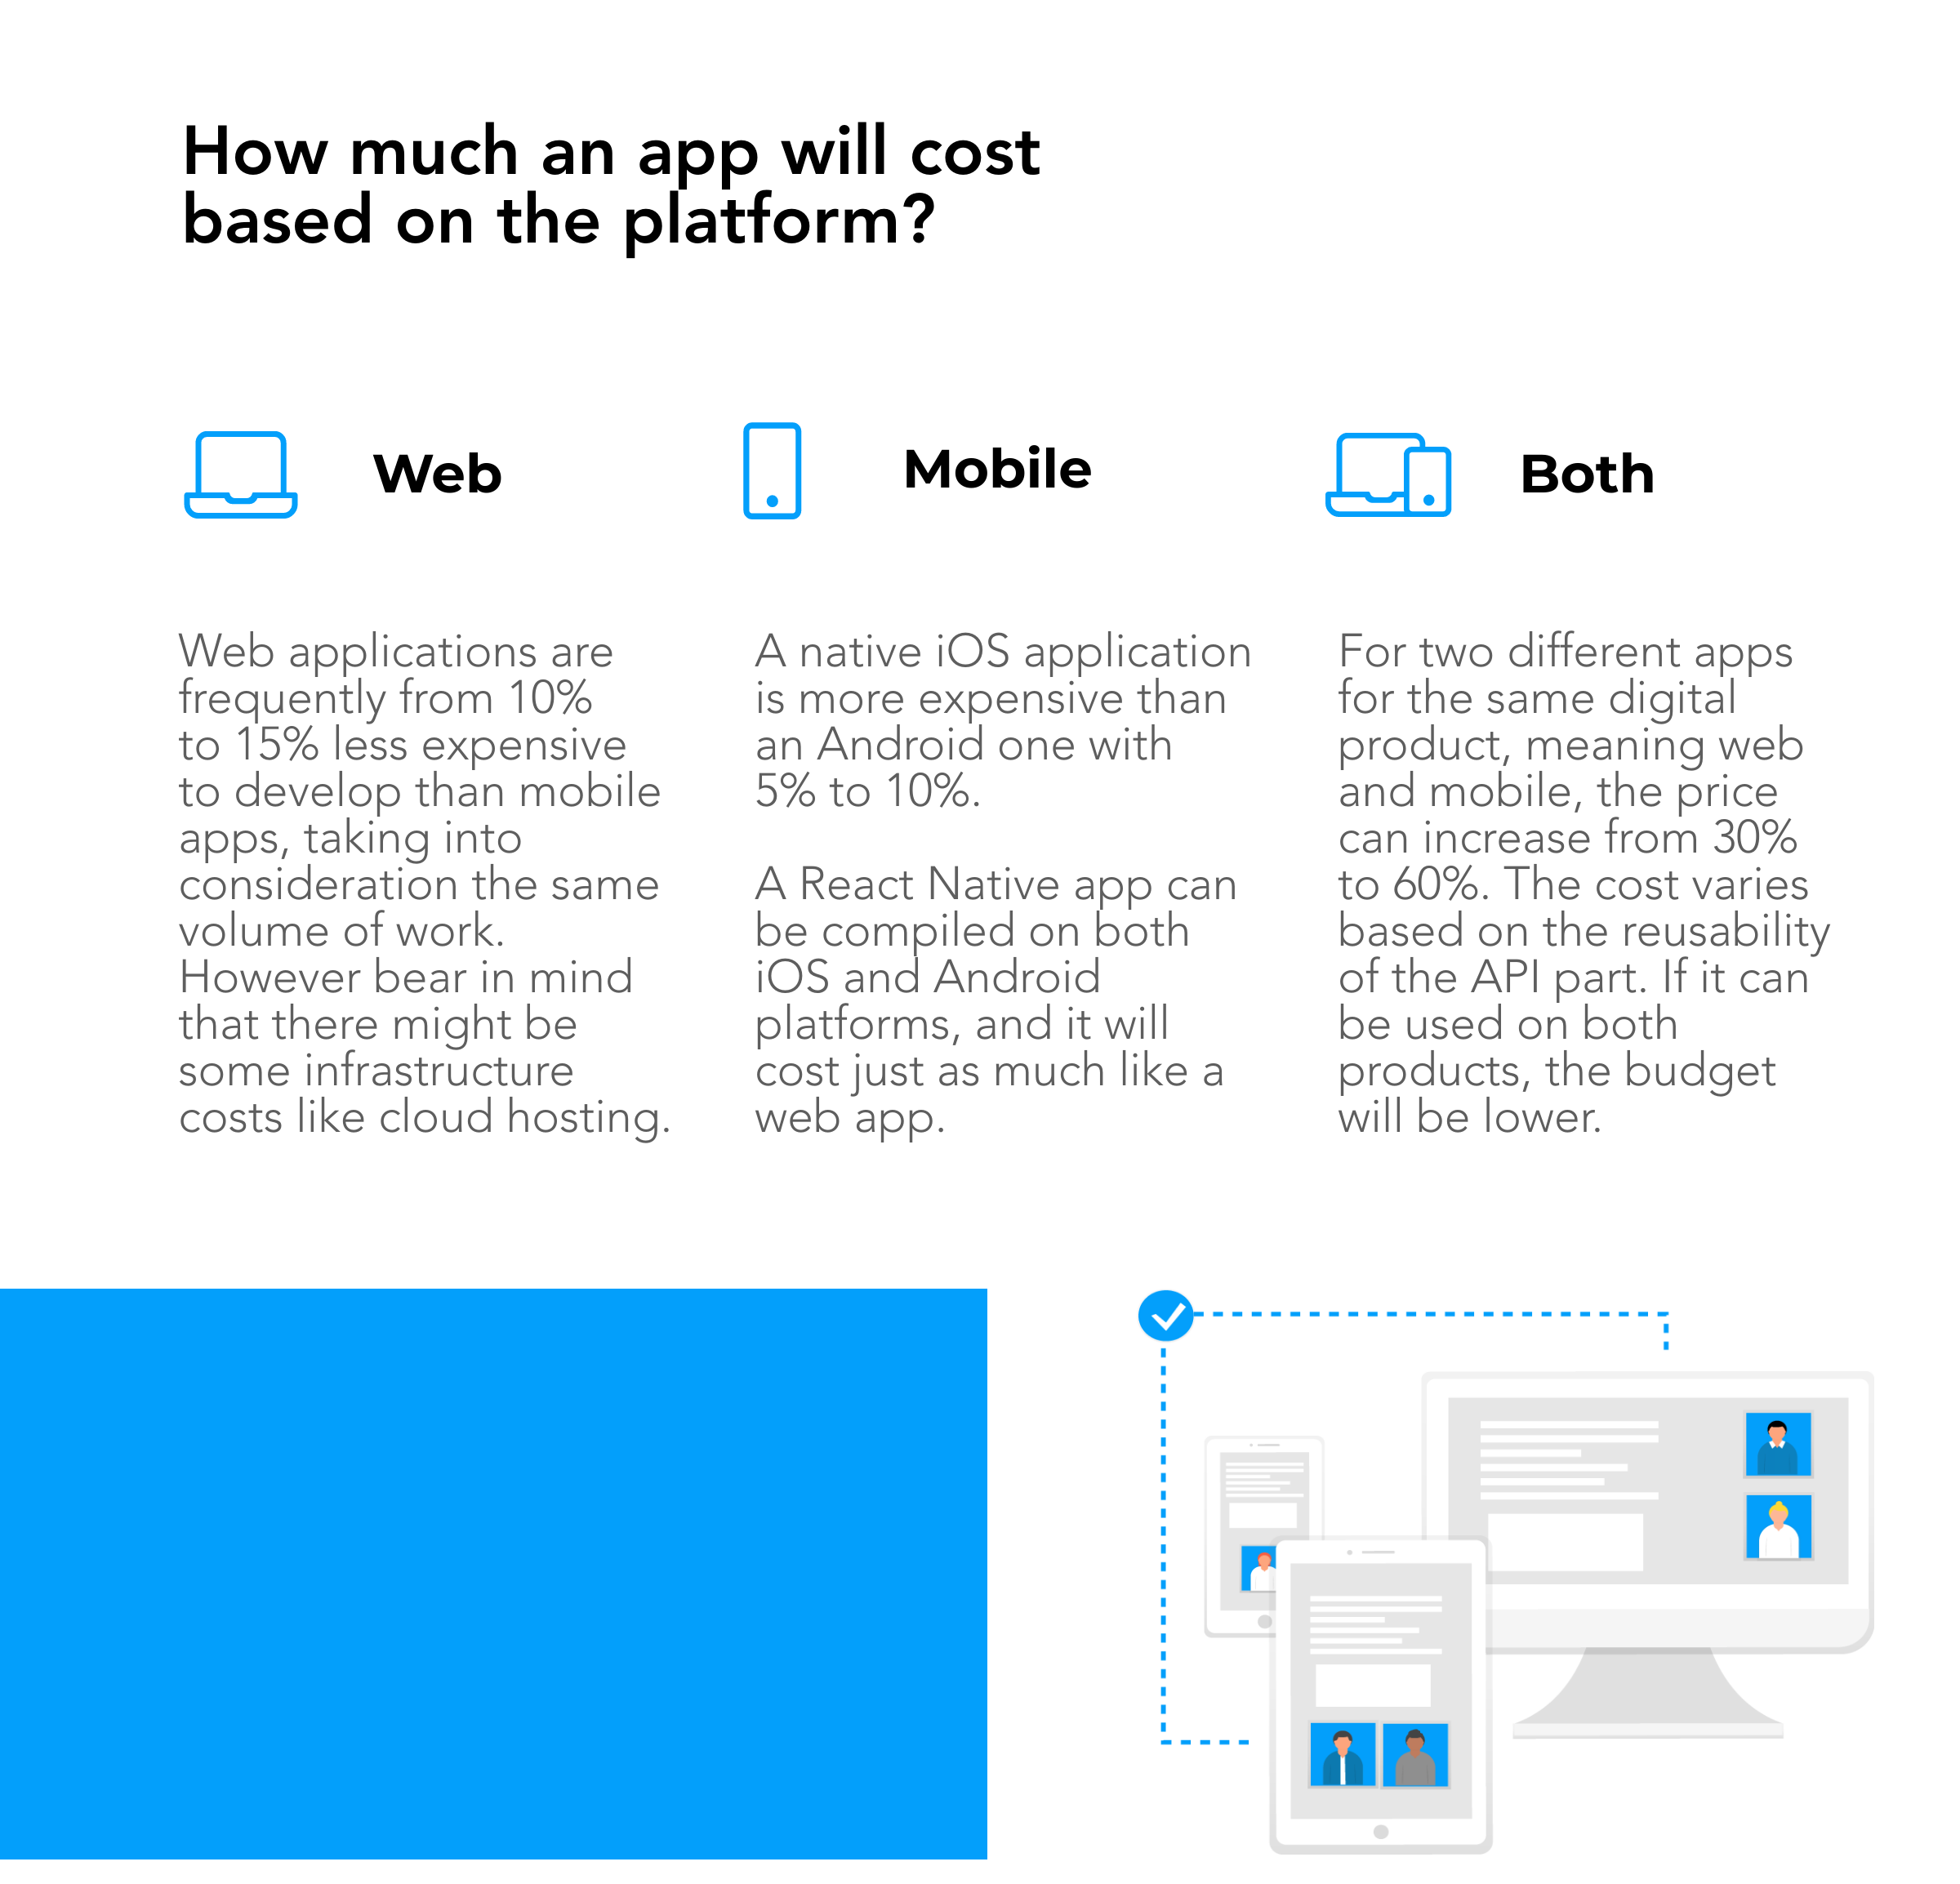 Cost-of-Web-development-vs-mobile-vs-both